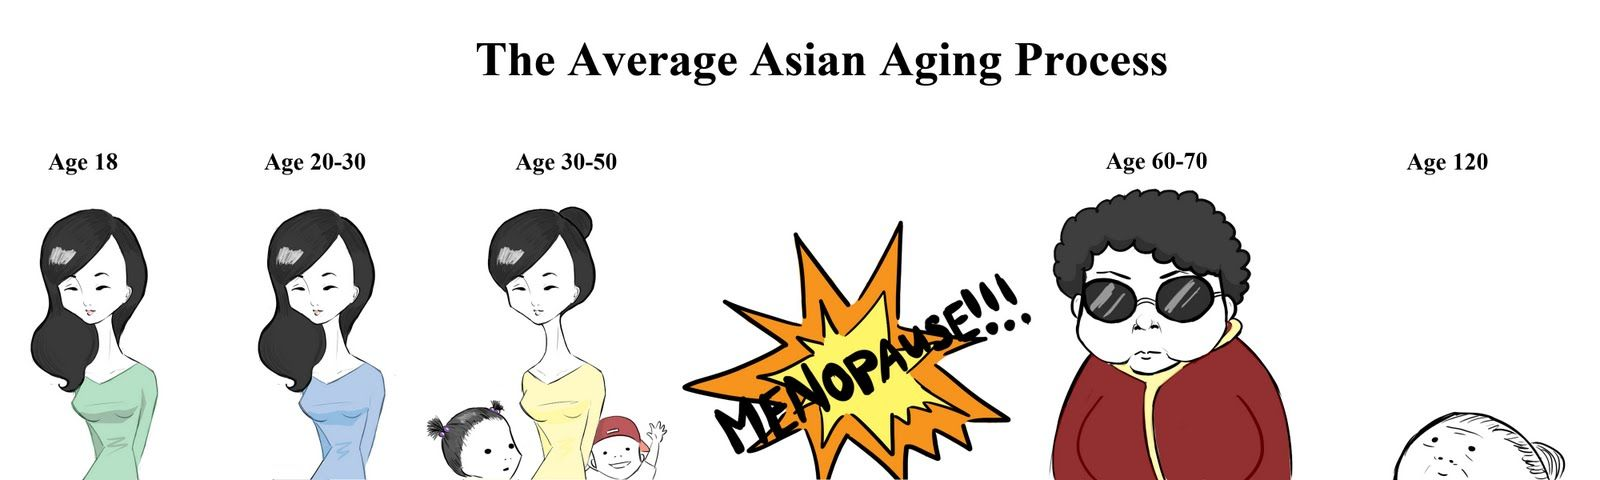 273c5db0ceb59df8c59eddc21425bbdb the average asian aging process asian aging, humor and hilarious